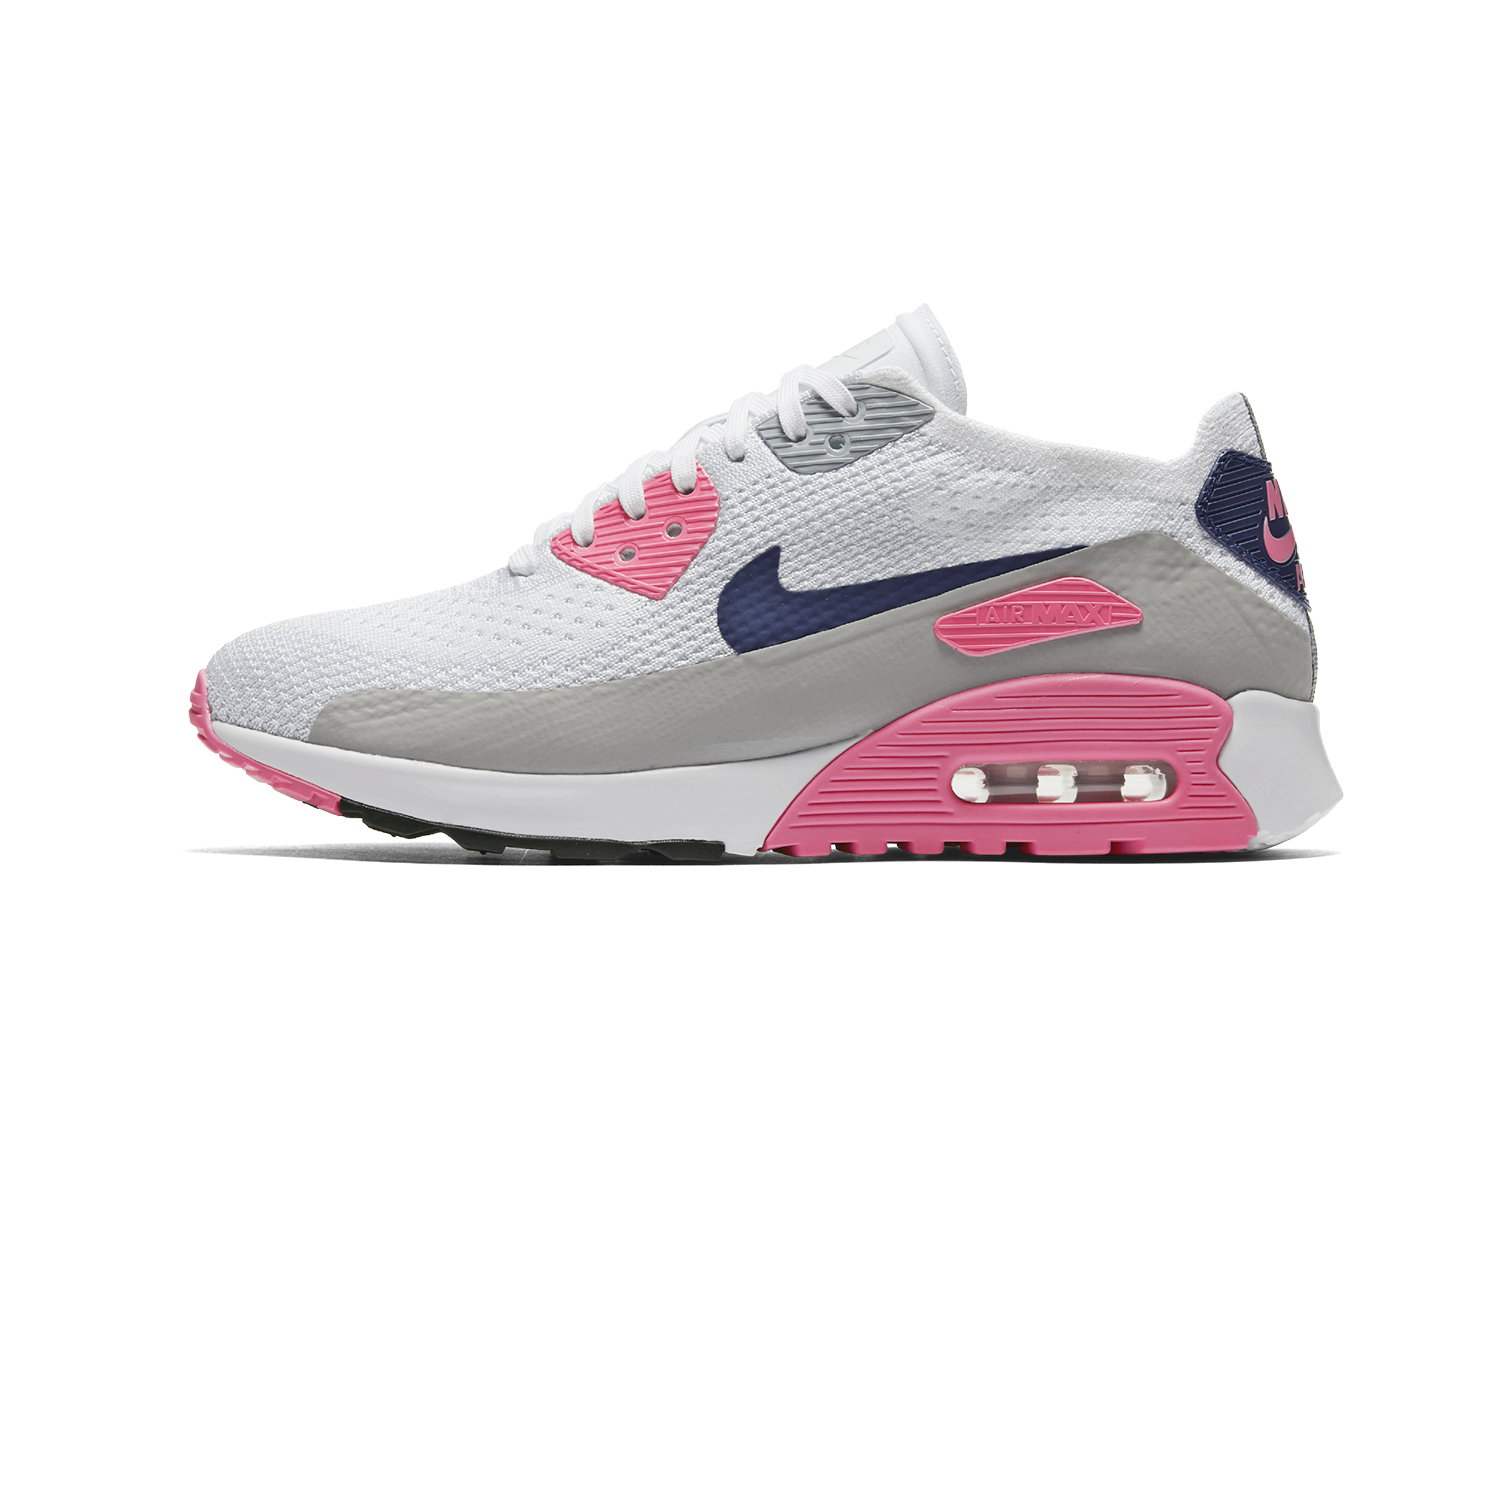 best service 72a55 75bf3 Nike Air Max 90 Ultra 2.0 Flyknit white concord/laser pink - Woman |  Holypopstore.com